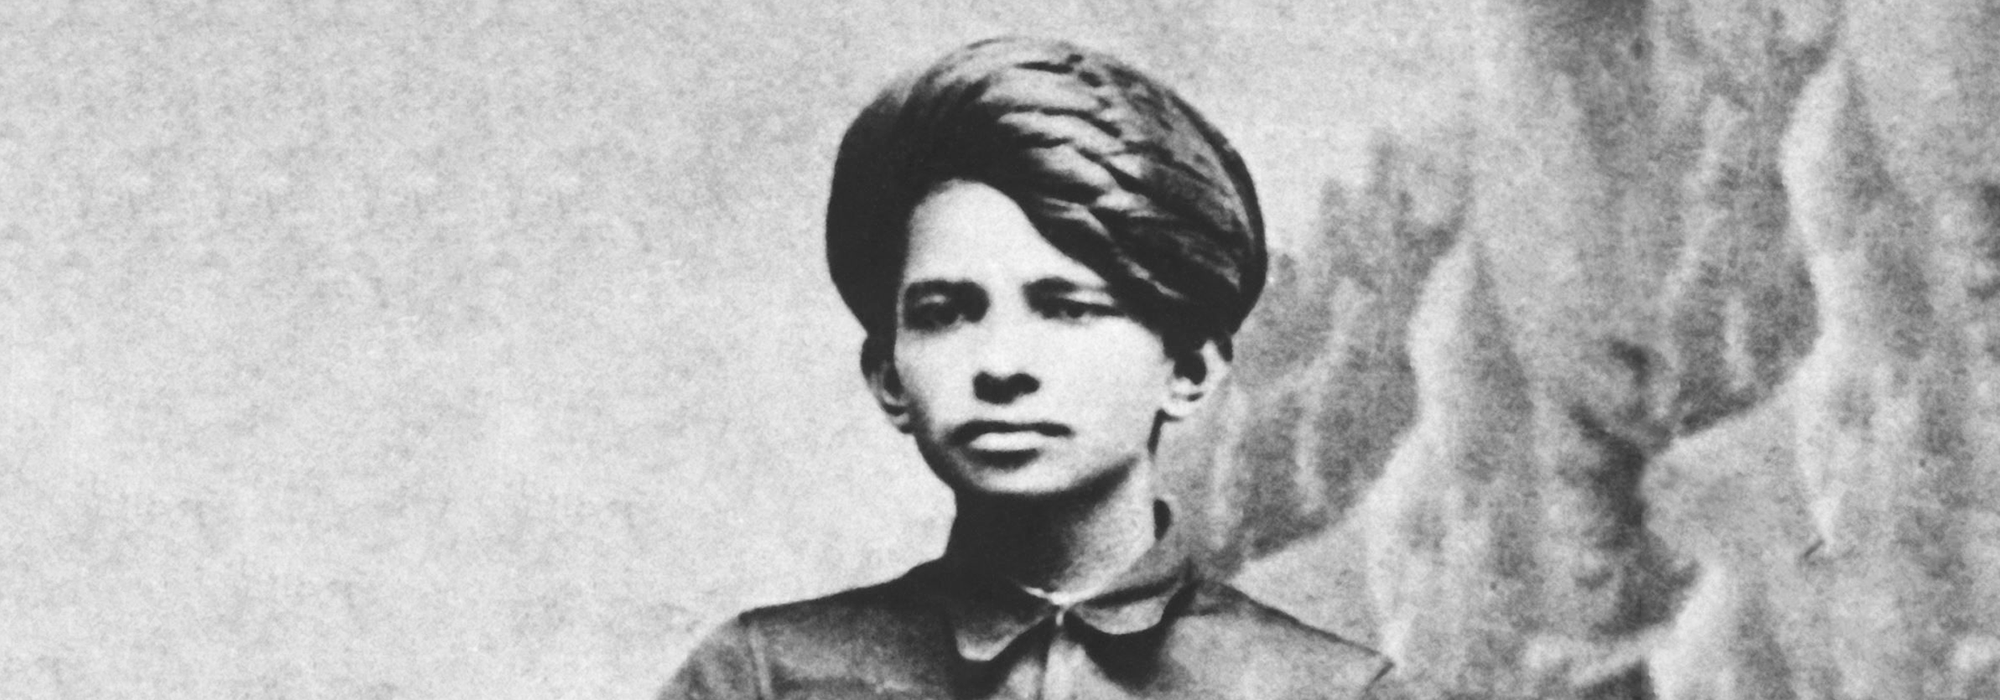 Gandhi at age 17, Rajkot, Gujarat